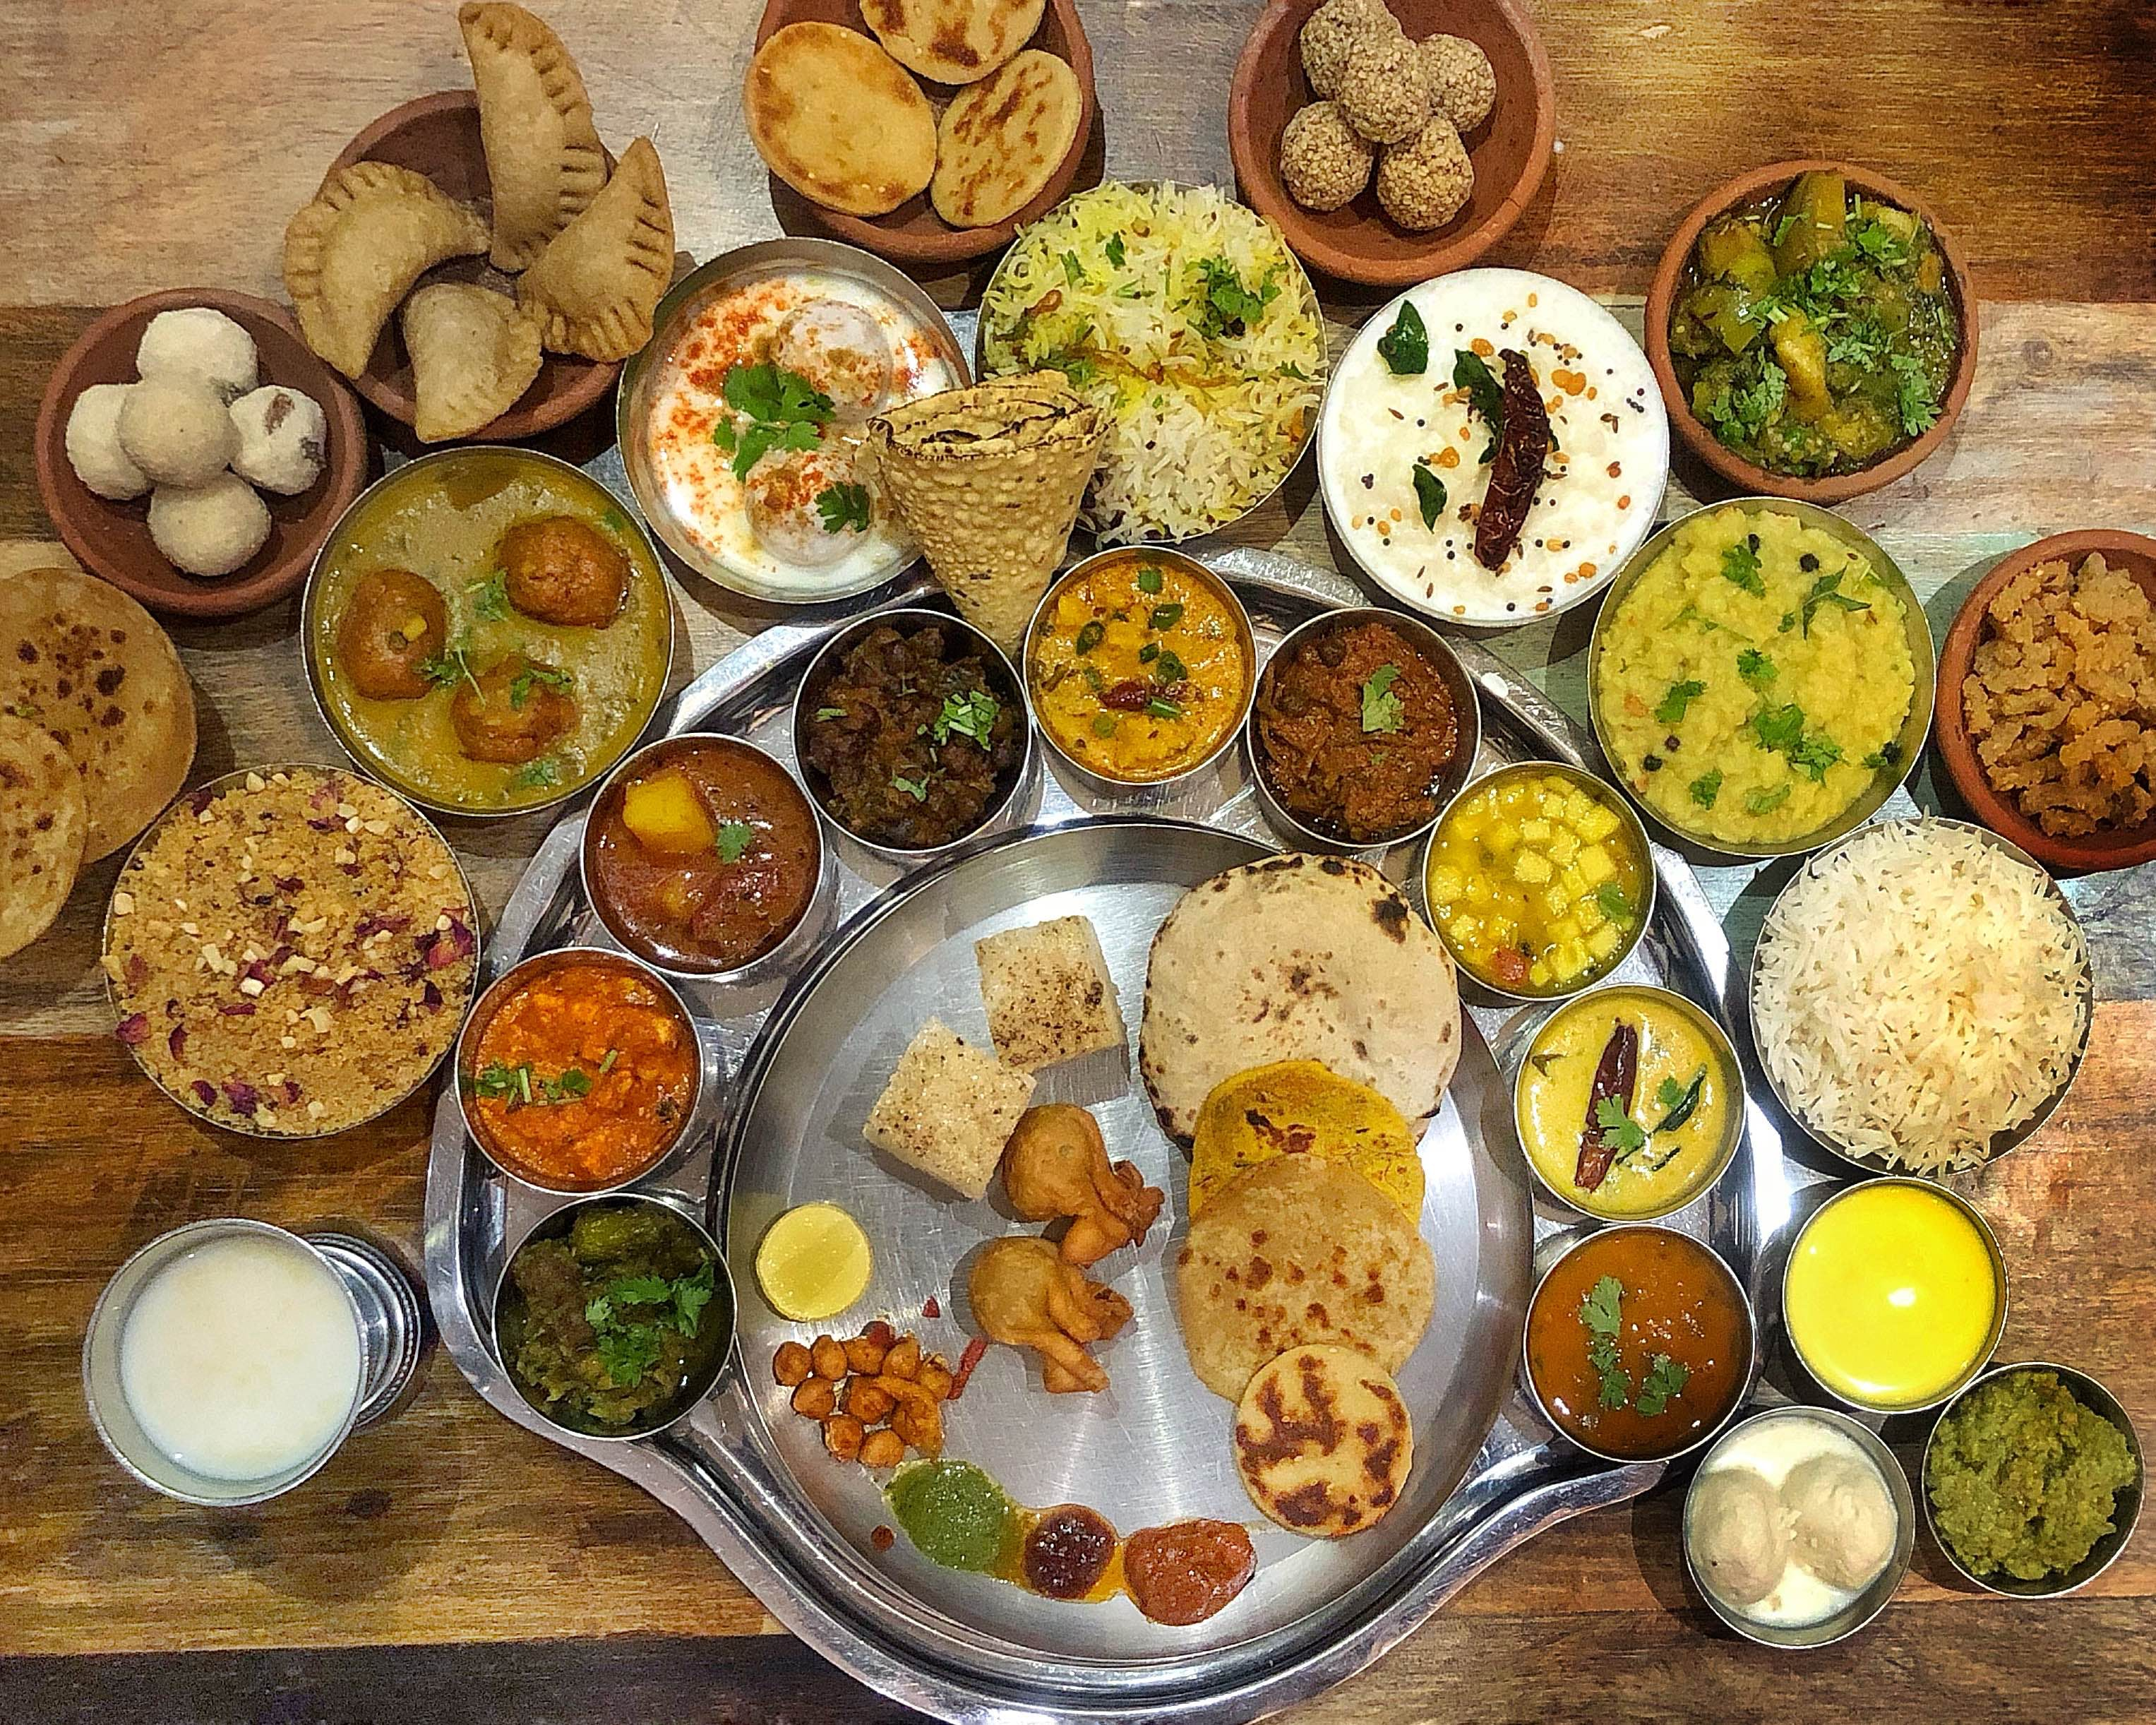 Gorge On This Gigantic Rajasthani Thaali Only For INR 675!